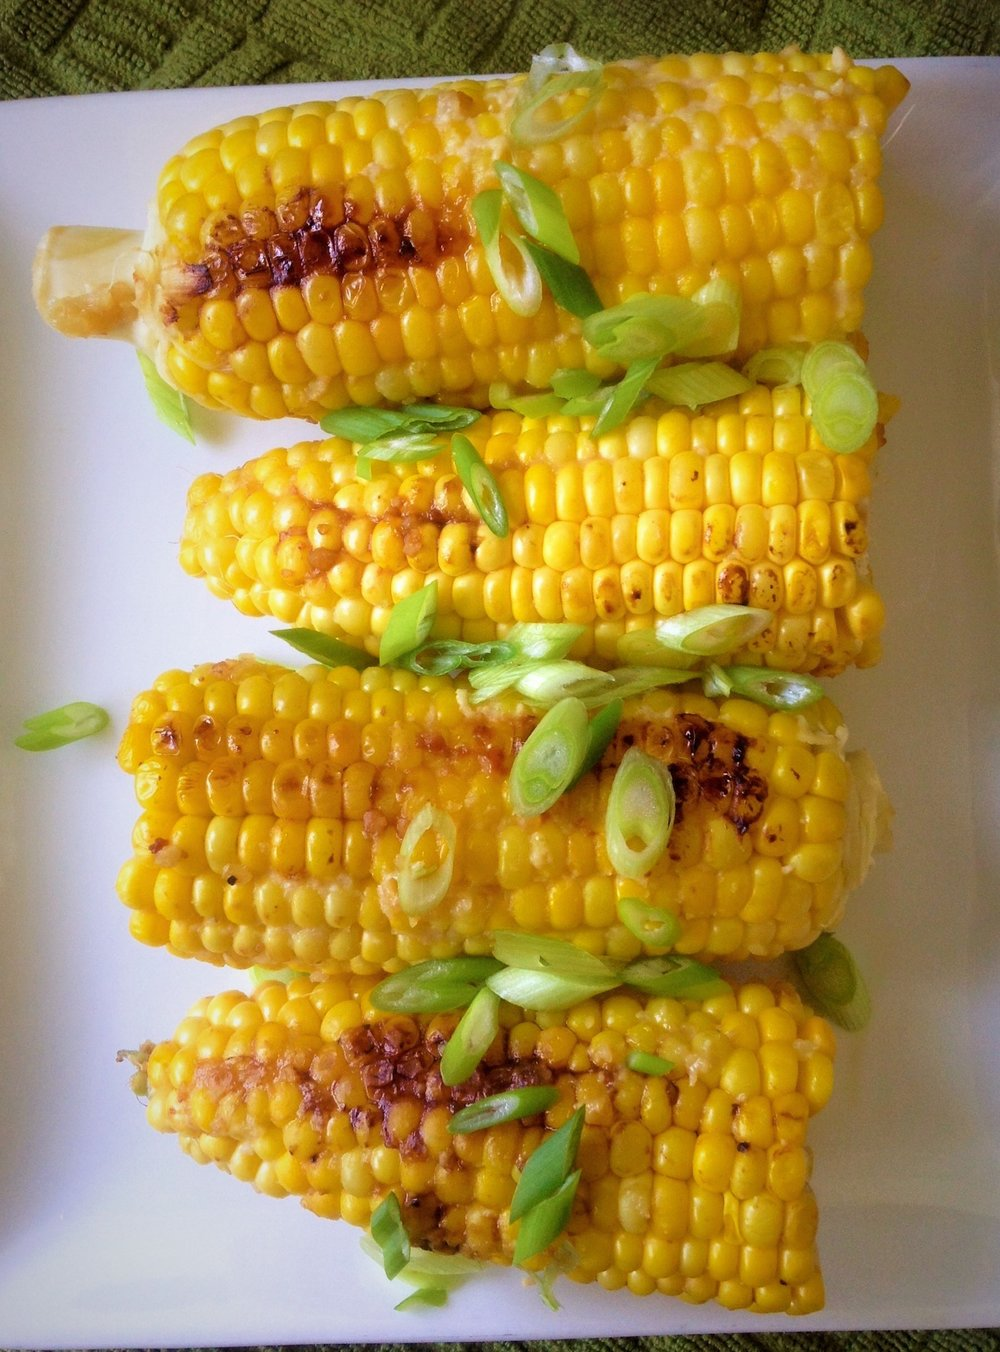 Miso Roasted Corn on the Cob - Healthy, Oil-Free, Vegan, Plant-Based, Gluten-Free, Easy